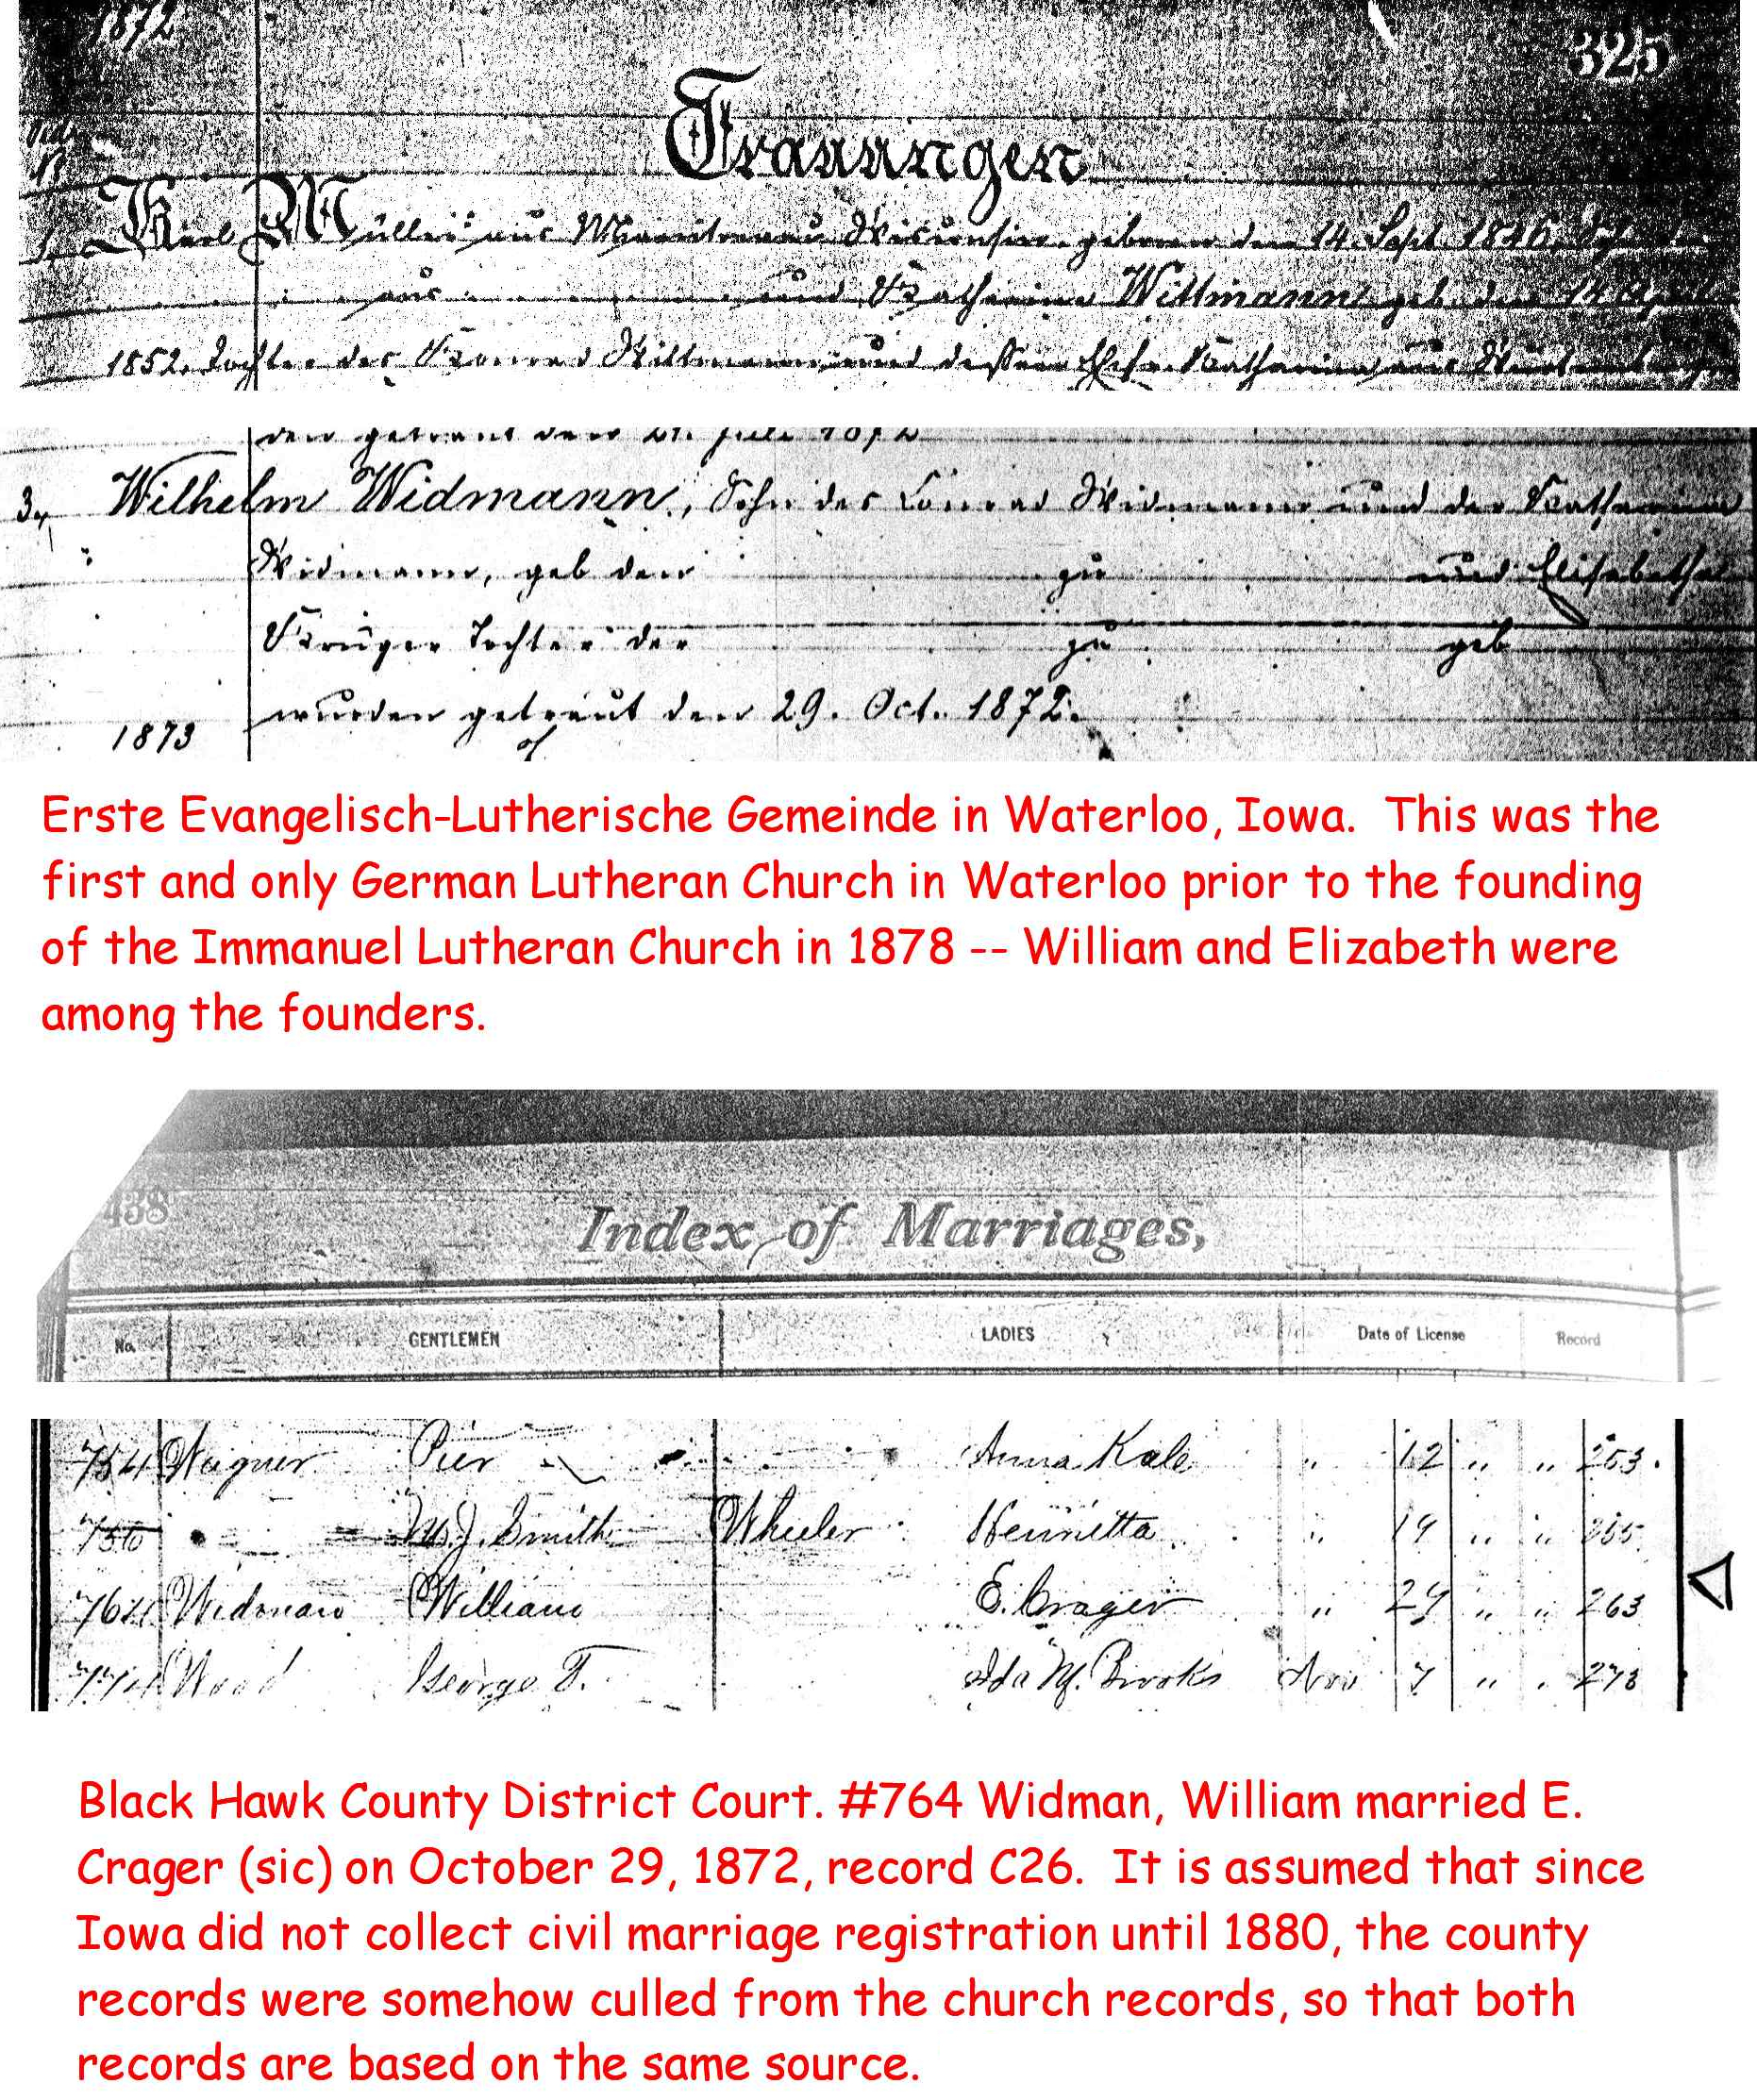 Genealogical Records (Other)